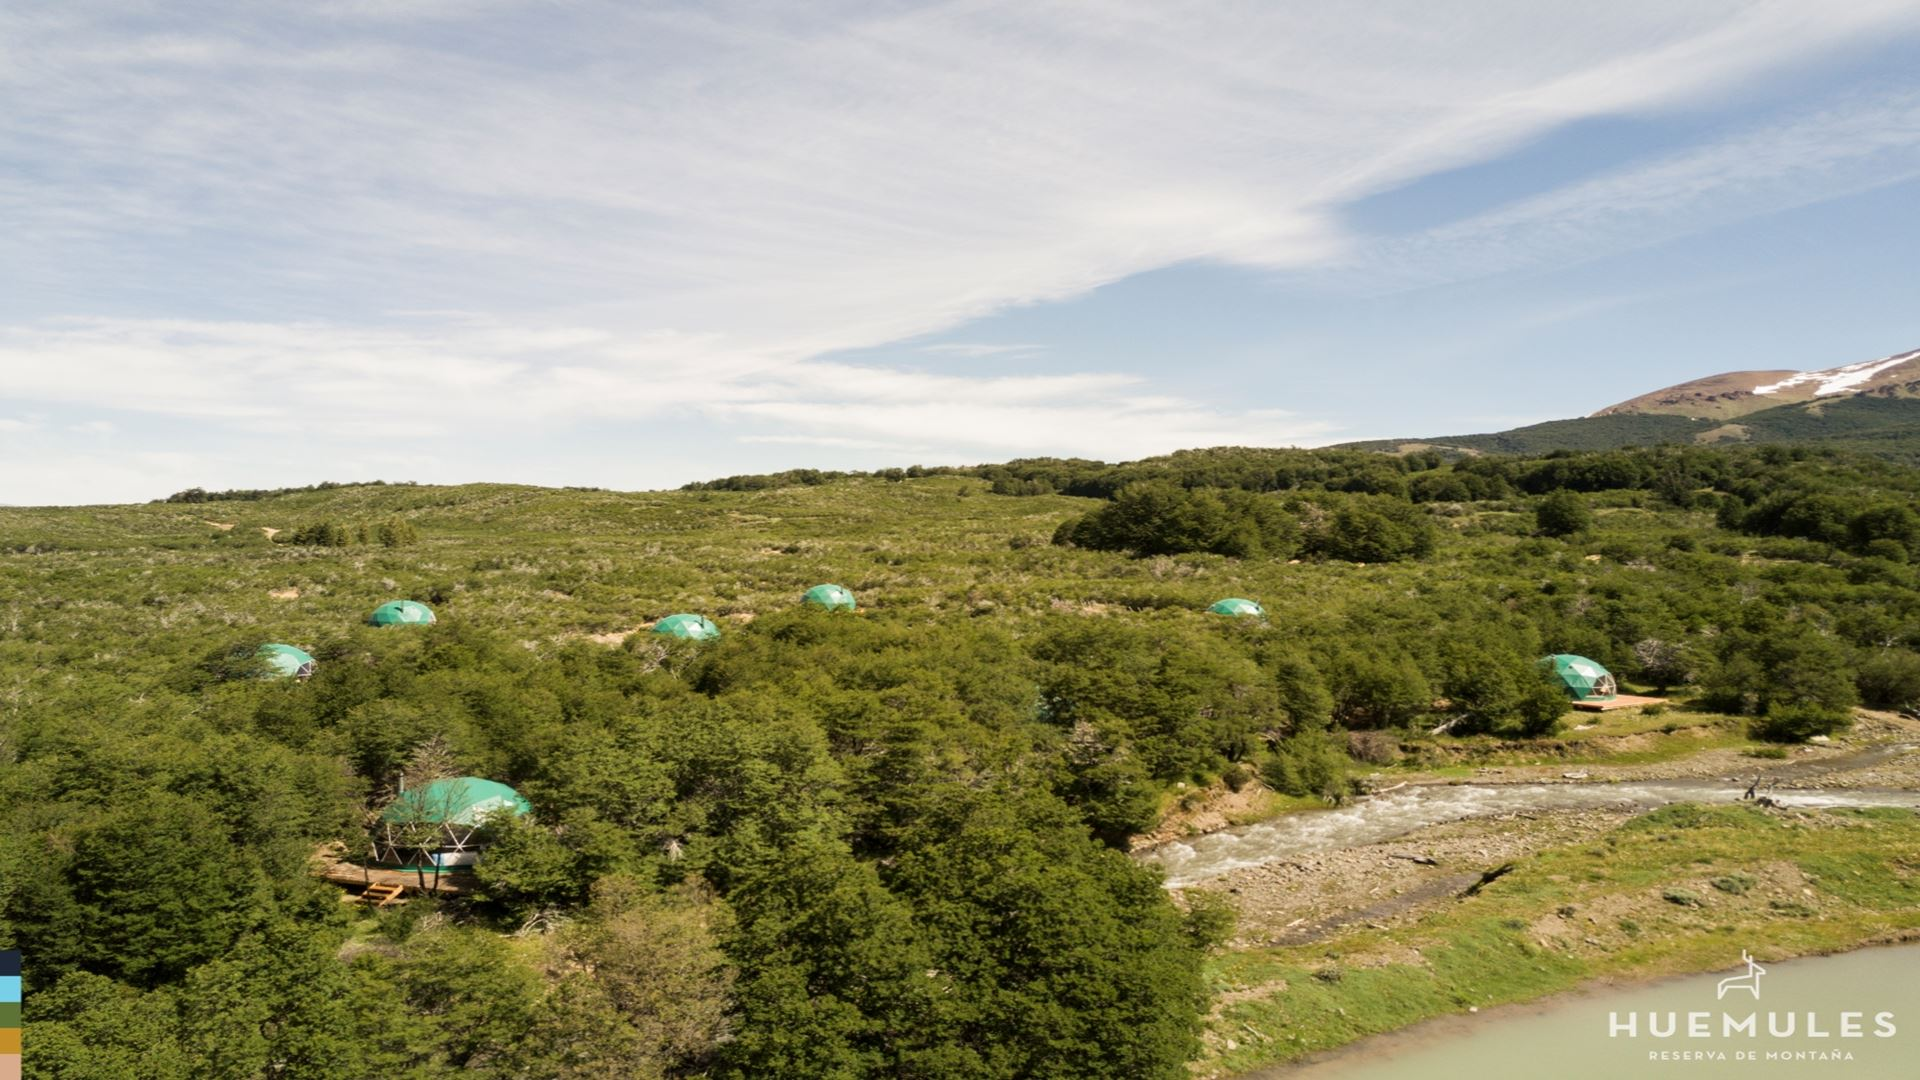 Esquel In 4 Days: Huemules And Los Alerces National Park